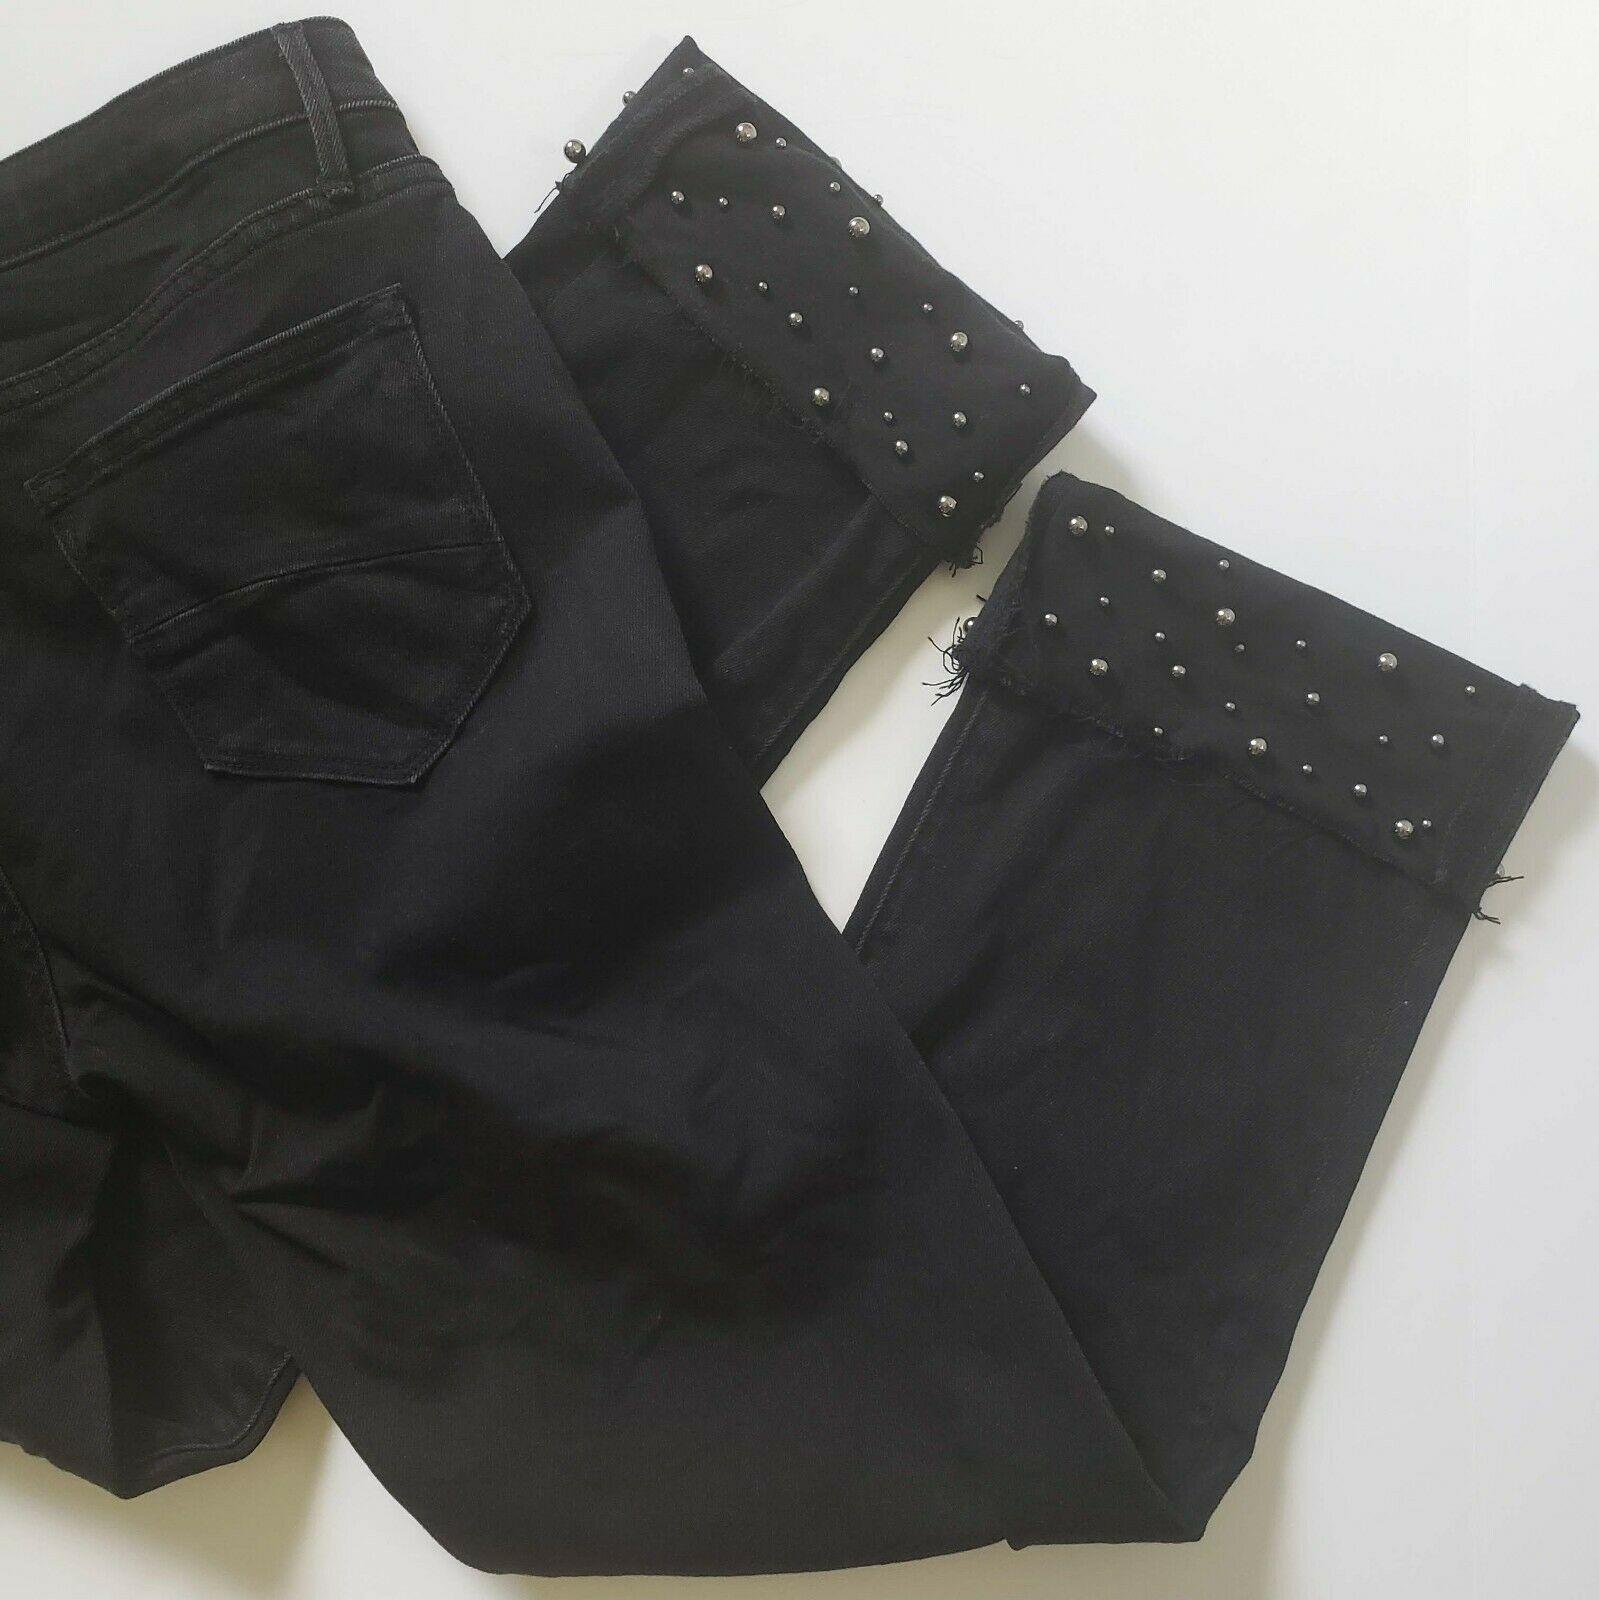 Driftwood Jeans Colette Embellished Raw Hem Black Denim Ankle Crop Size 31